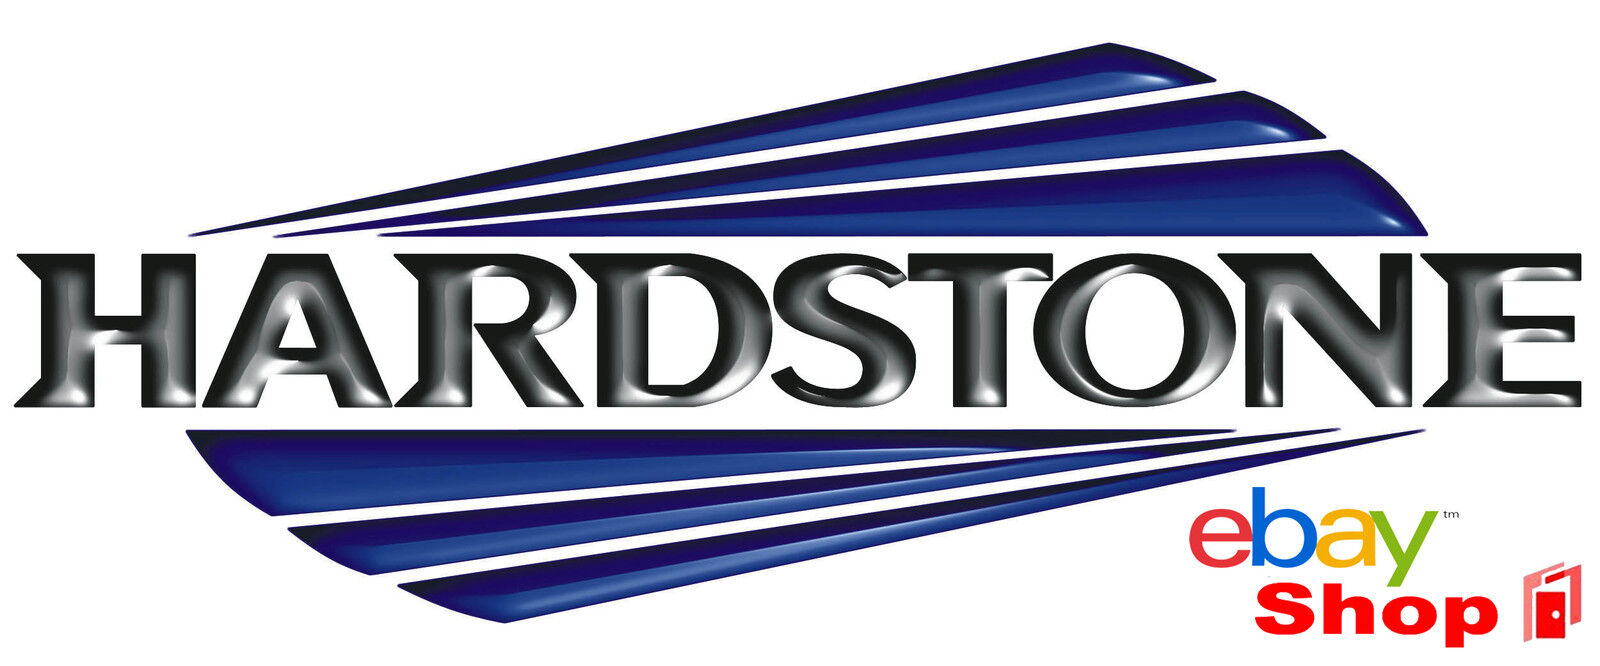 HARDSTONE Car Audio